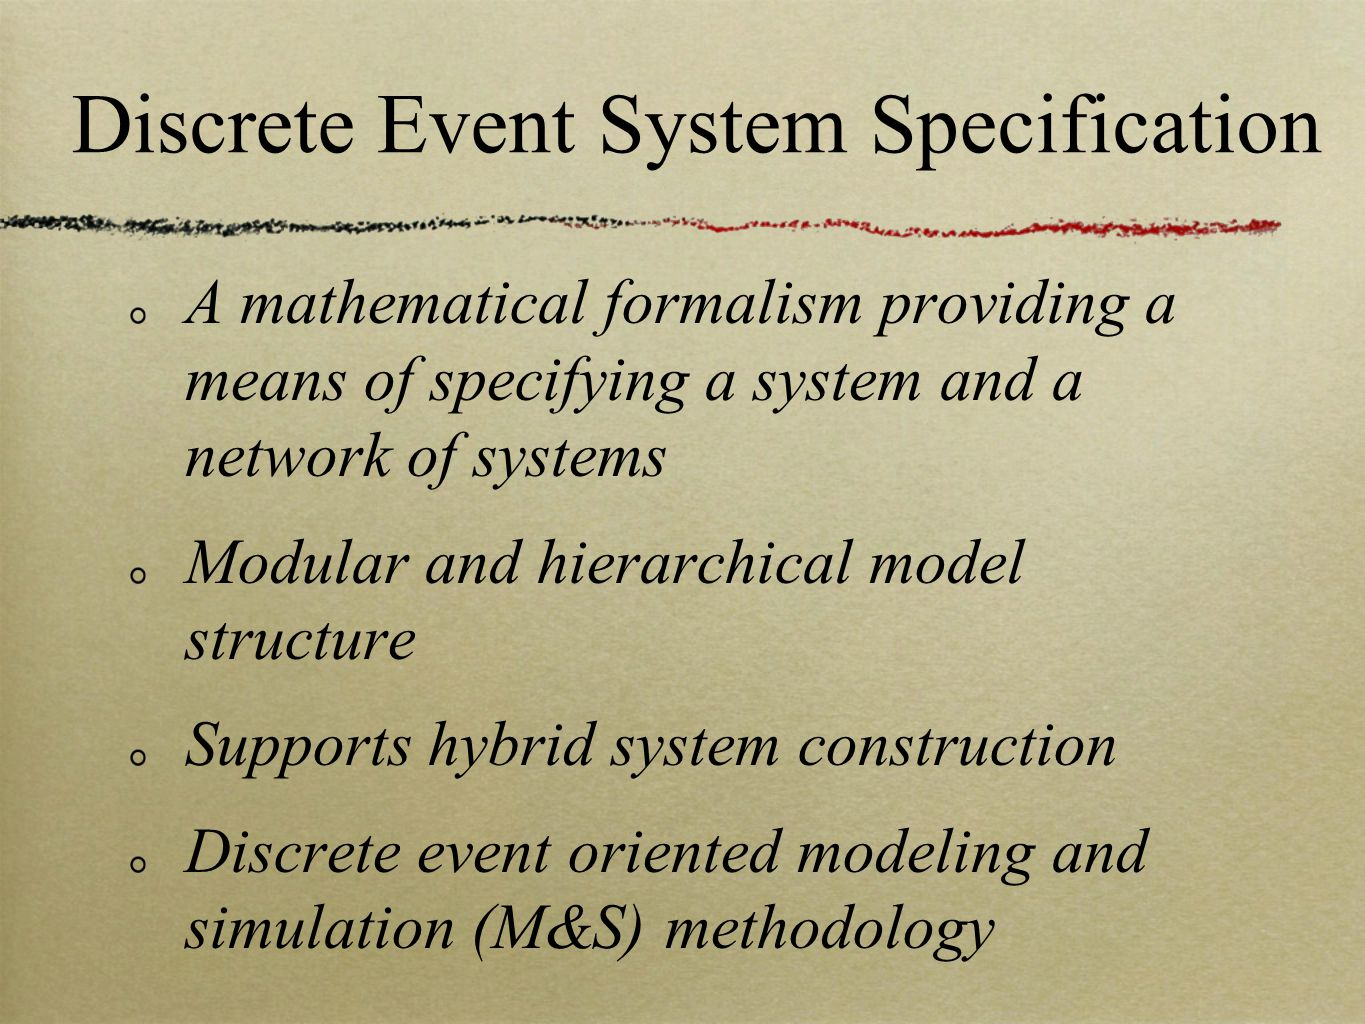 Discrete Event System Specification A mathematical formalism providing a means of specifying a system and a network of systems Modular and hierarchical model structure Supports hybrid system construction Discrete event oriented modeling and simulation (M&S) methodology